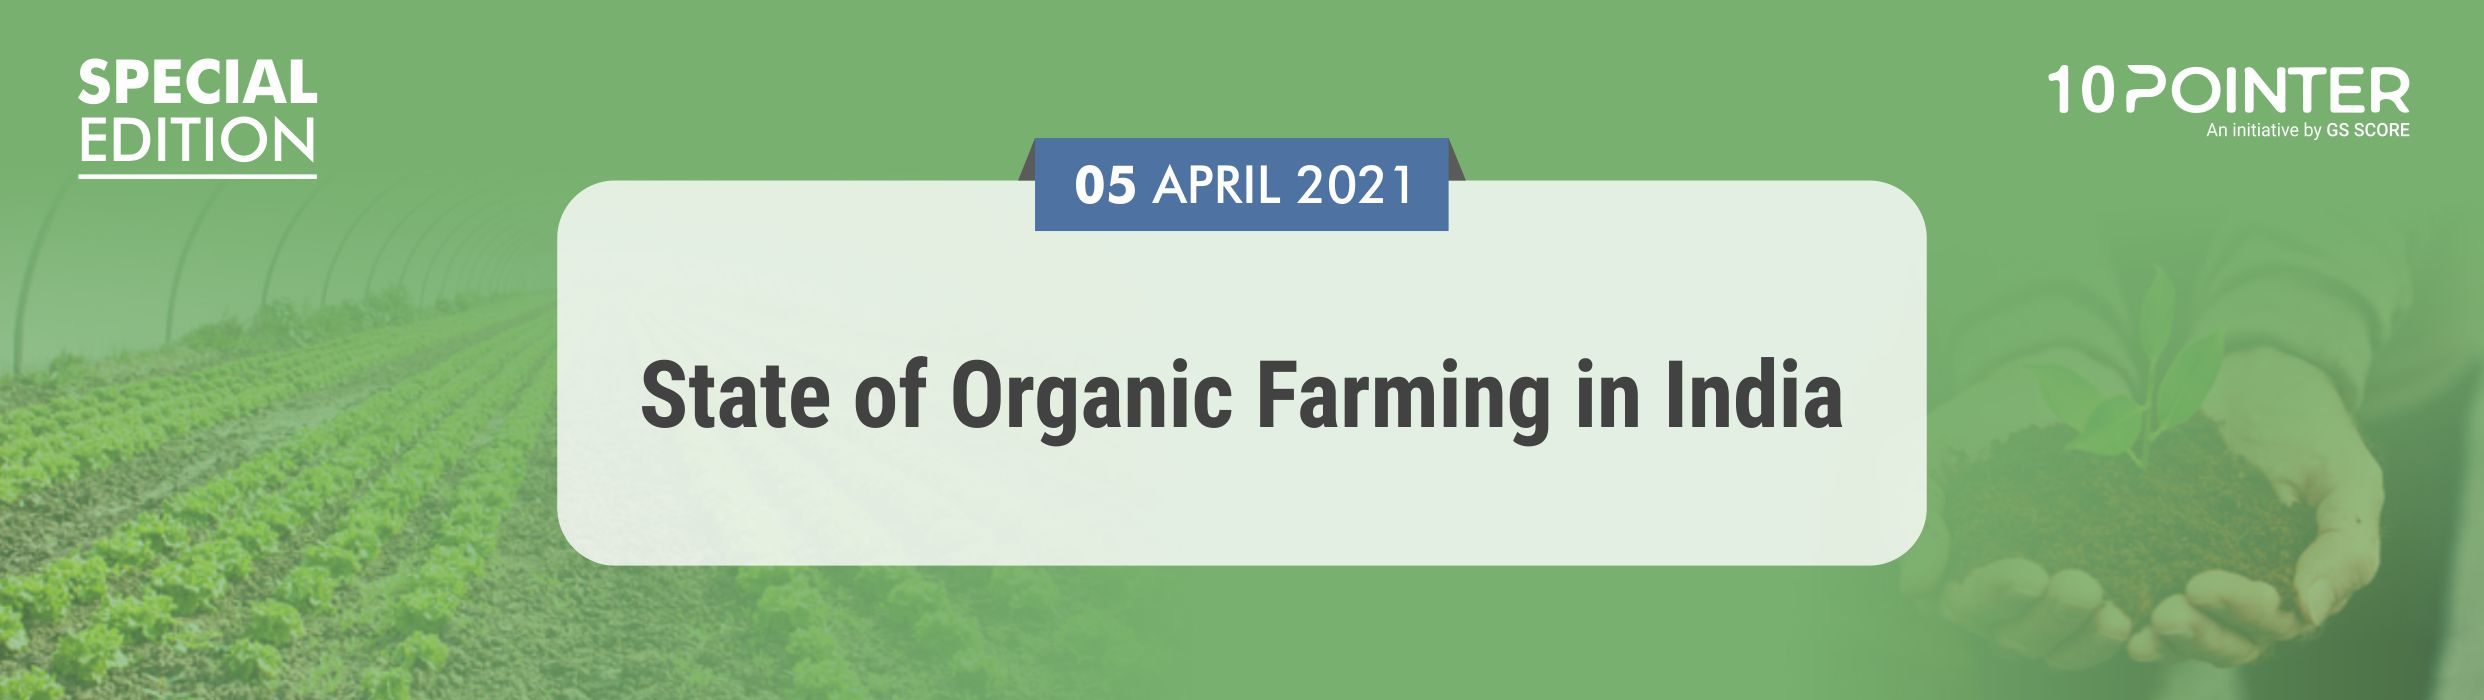 State of Organic Farming in India